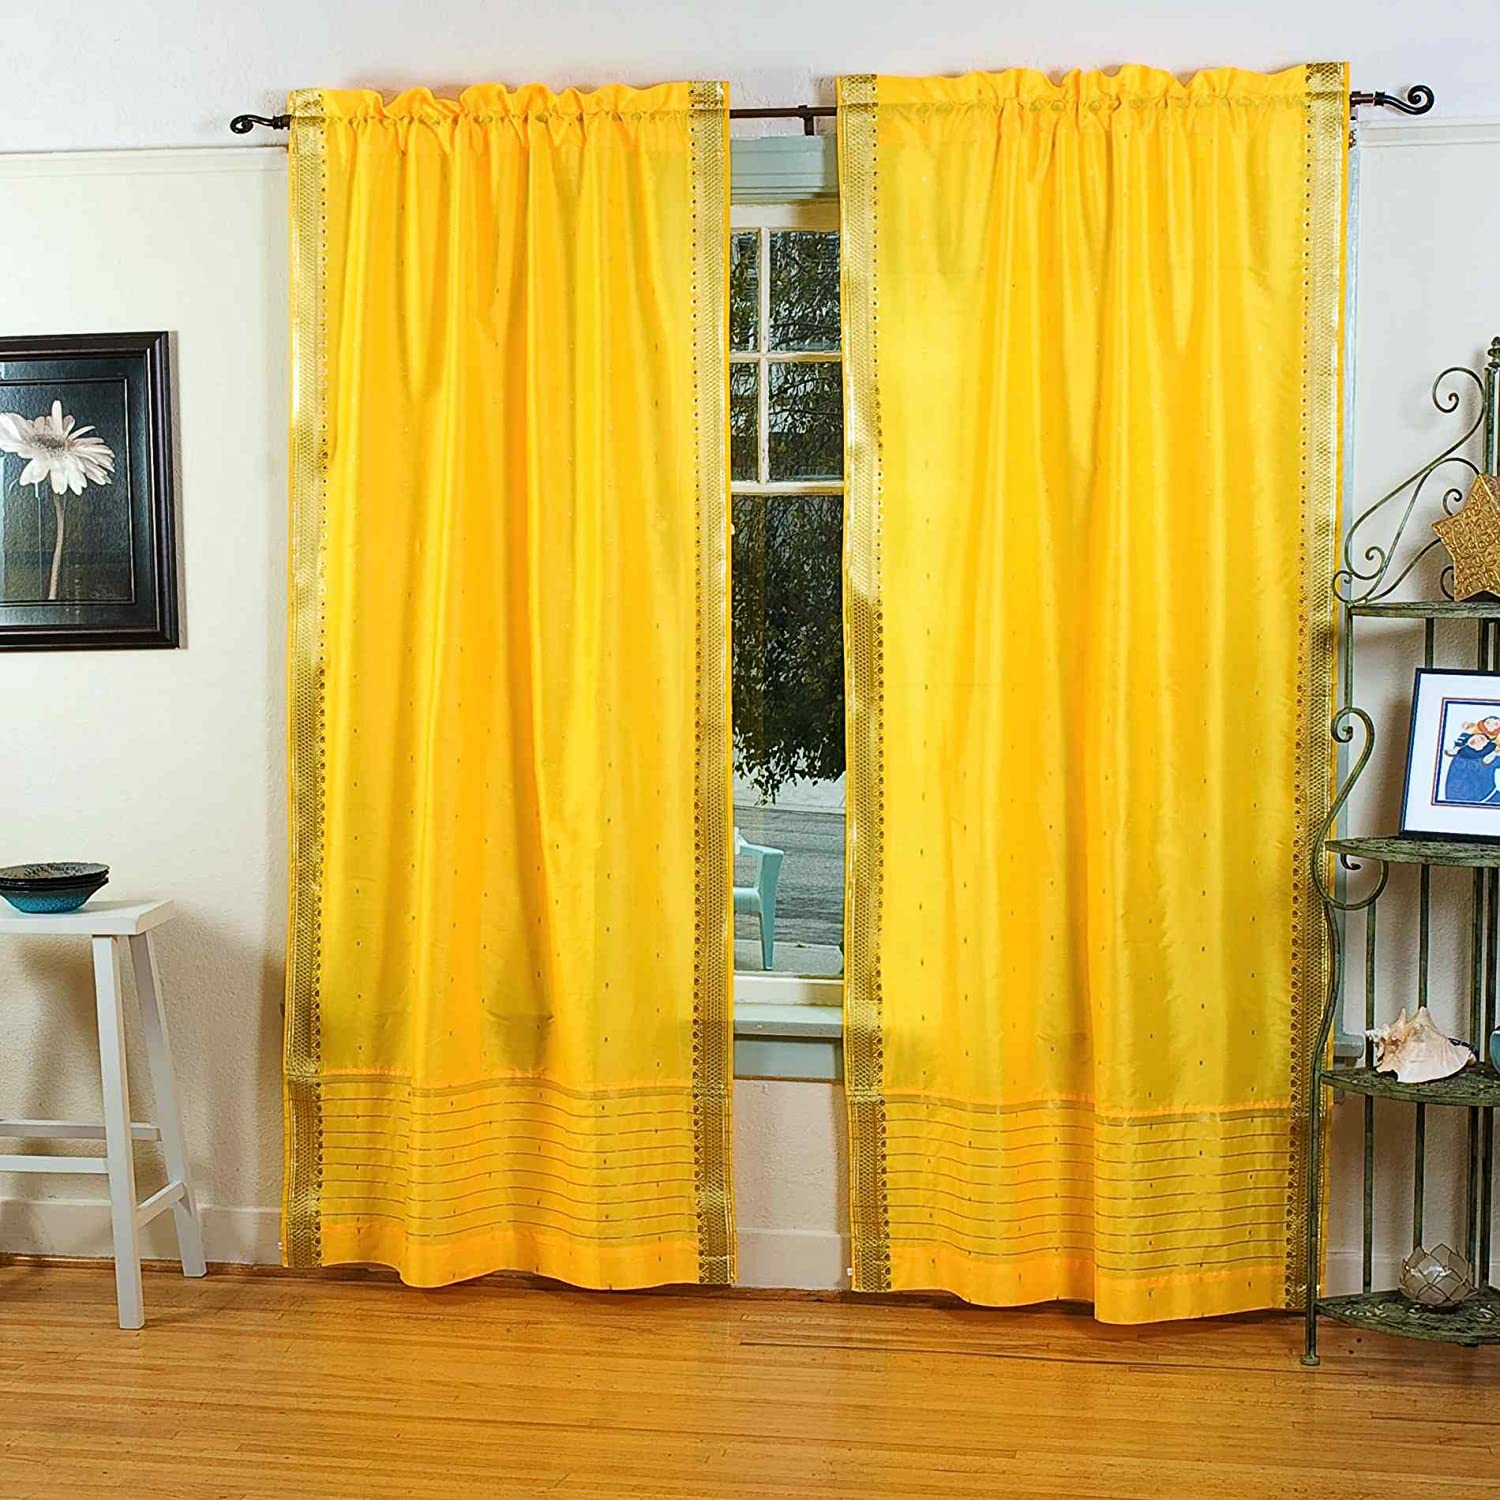 Grommet Curtains, Yellow Curtains